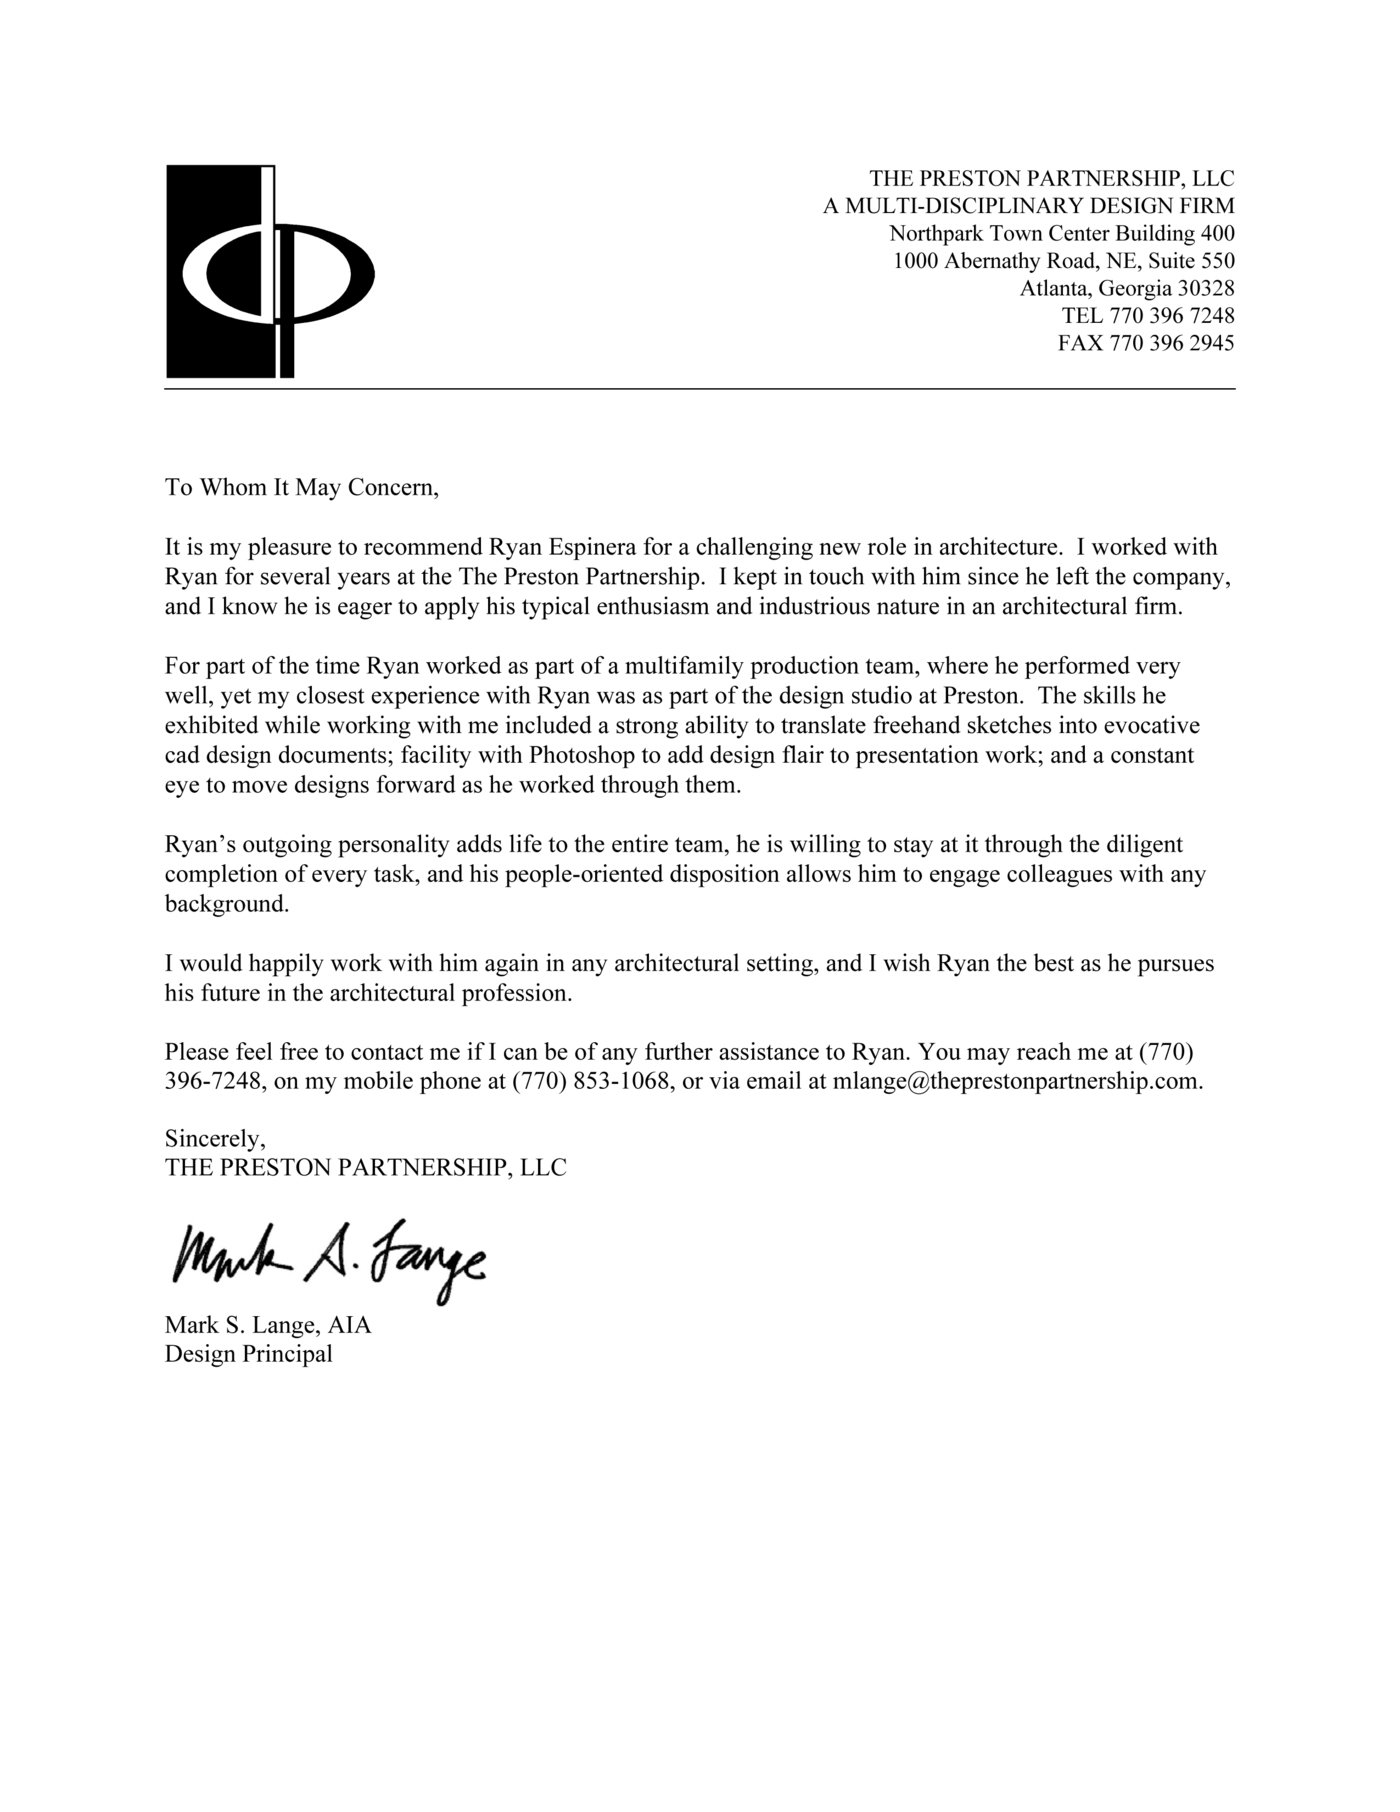 Letter Of Recommendation For Principal from s3images.coroflot.com